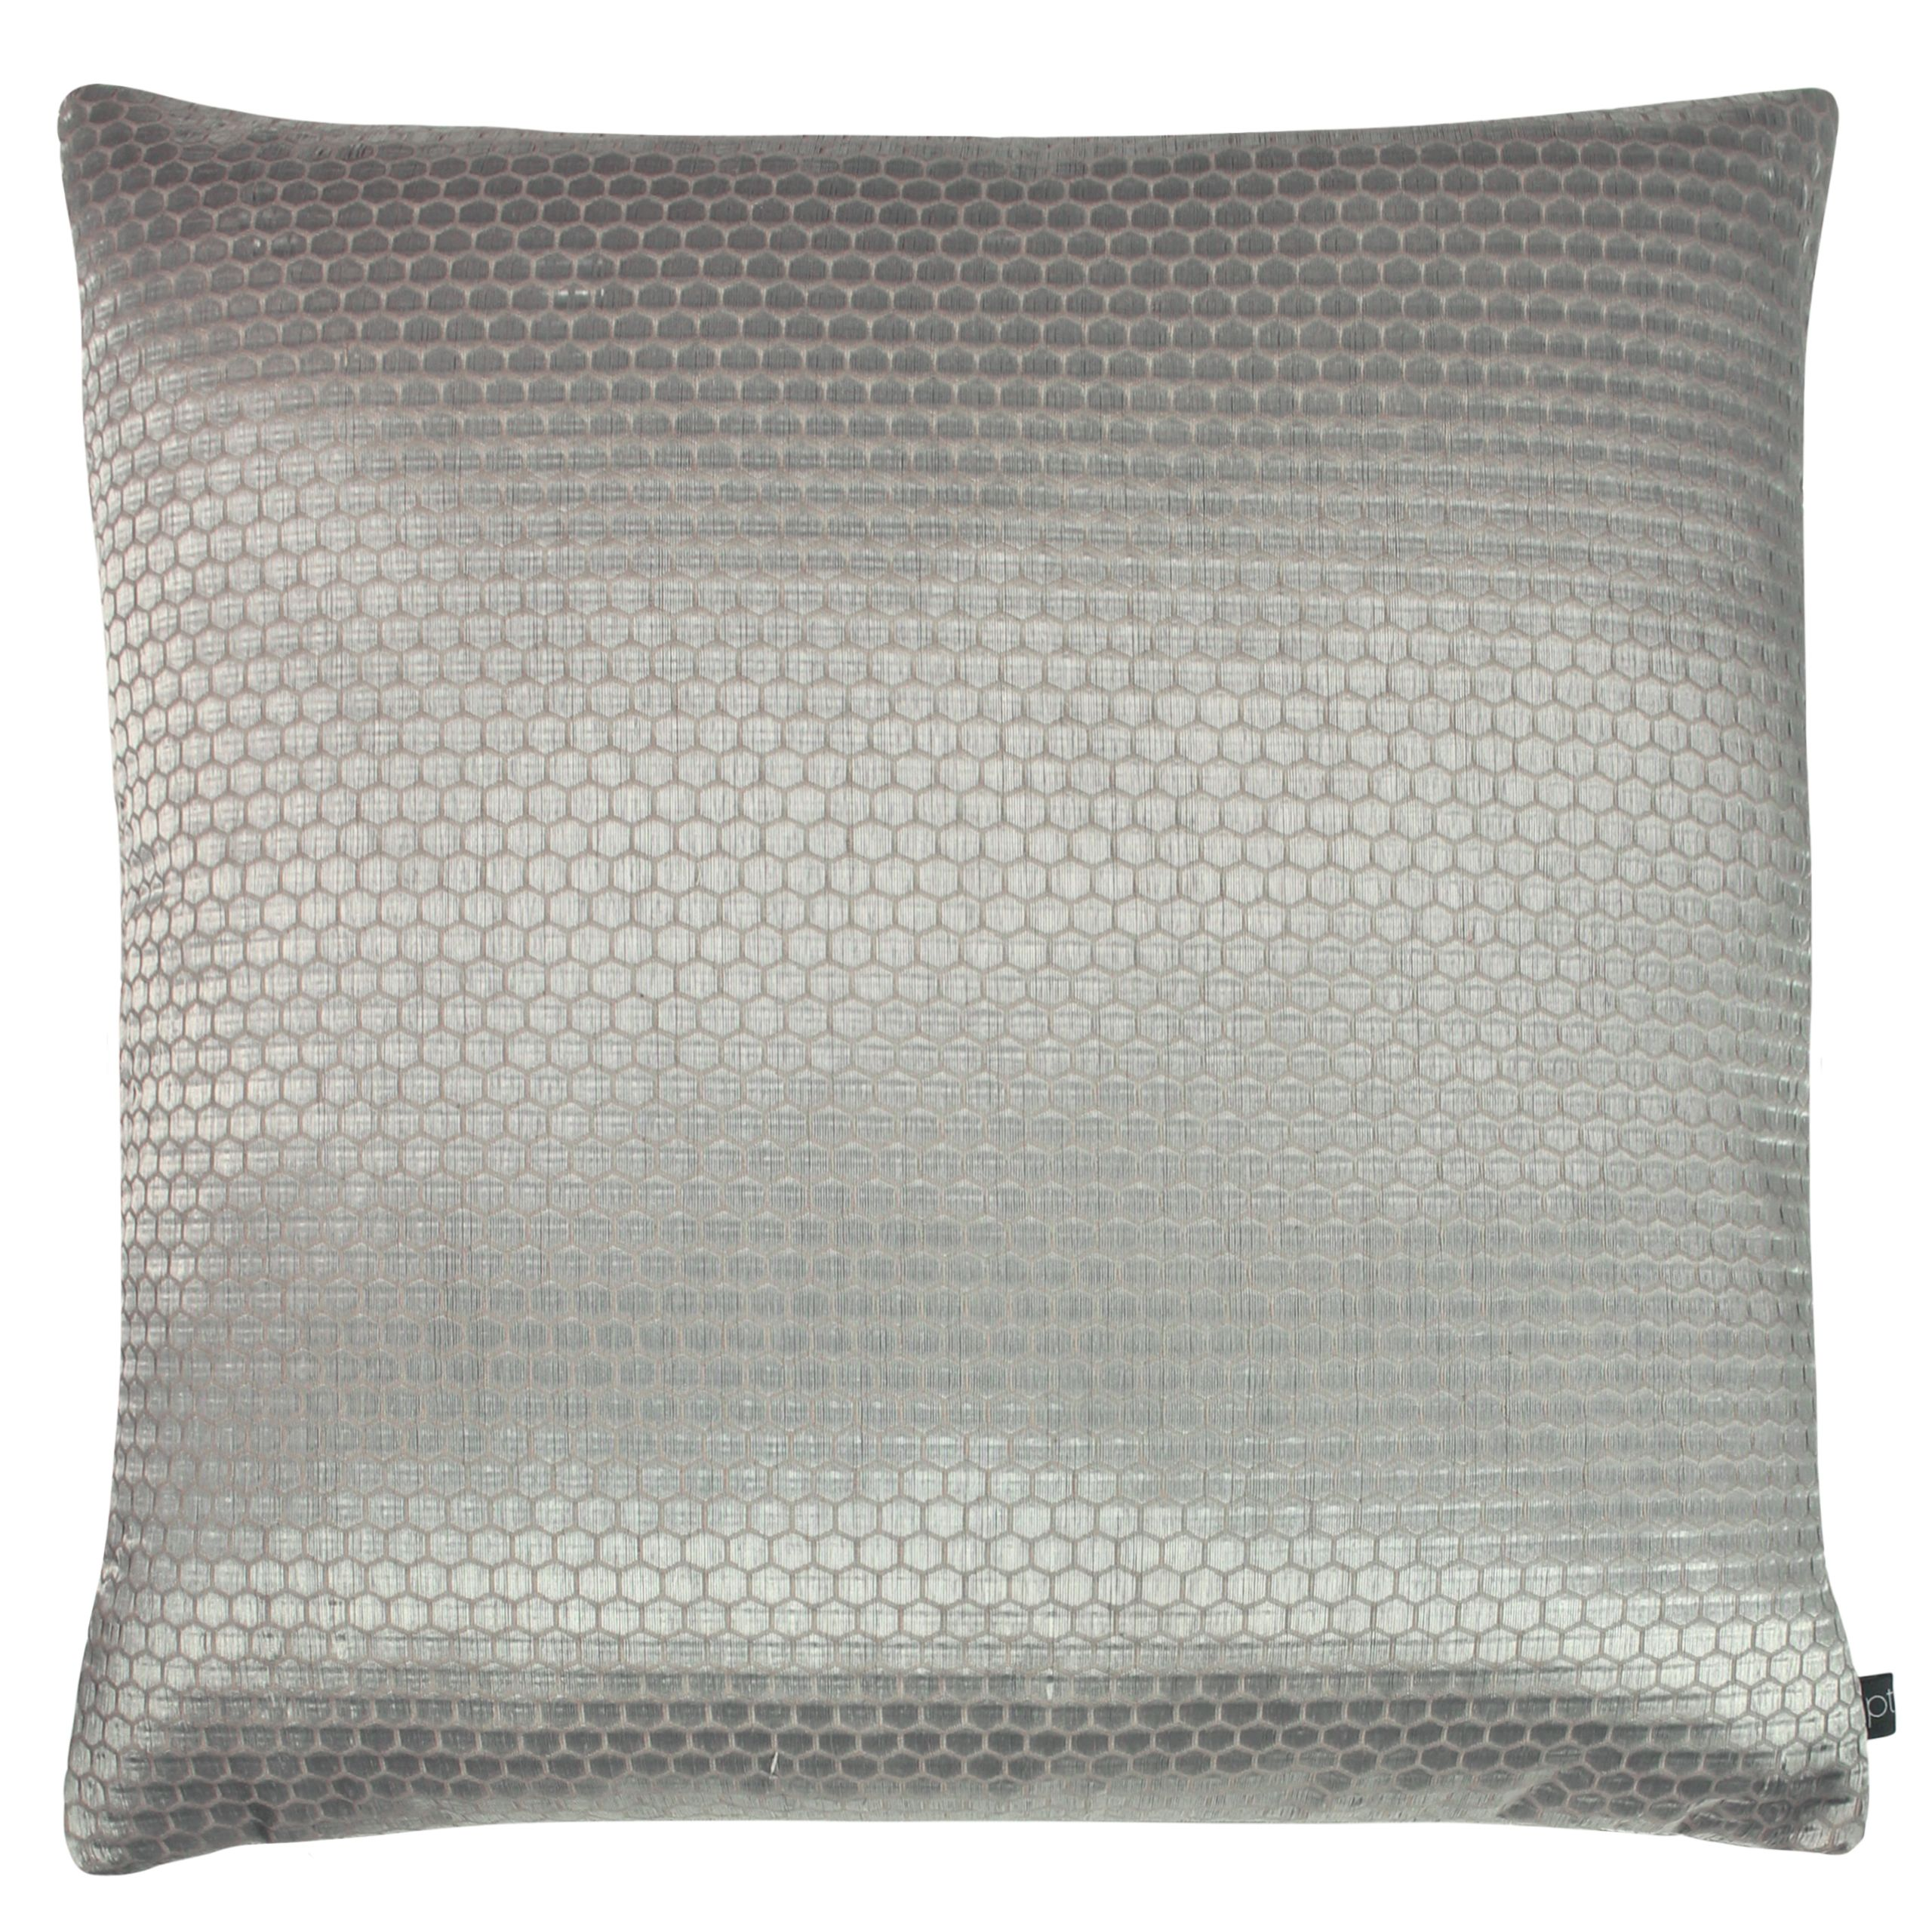 Prestigious Textiles Emboss Polyester Filled Cushion, Polyester, Cotton, Shell